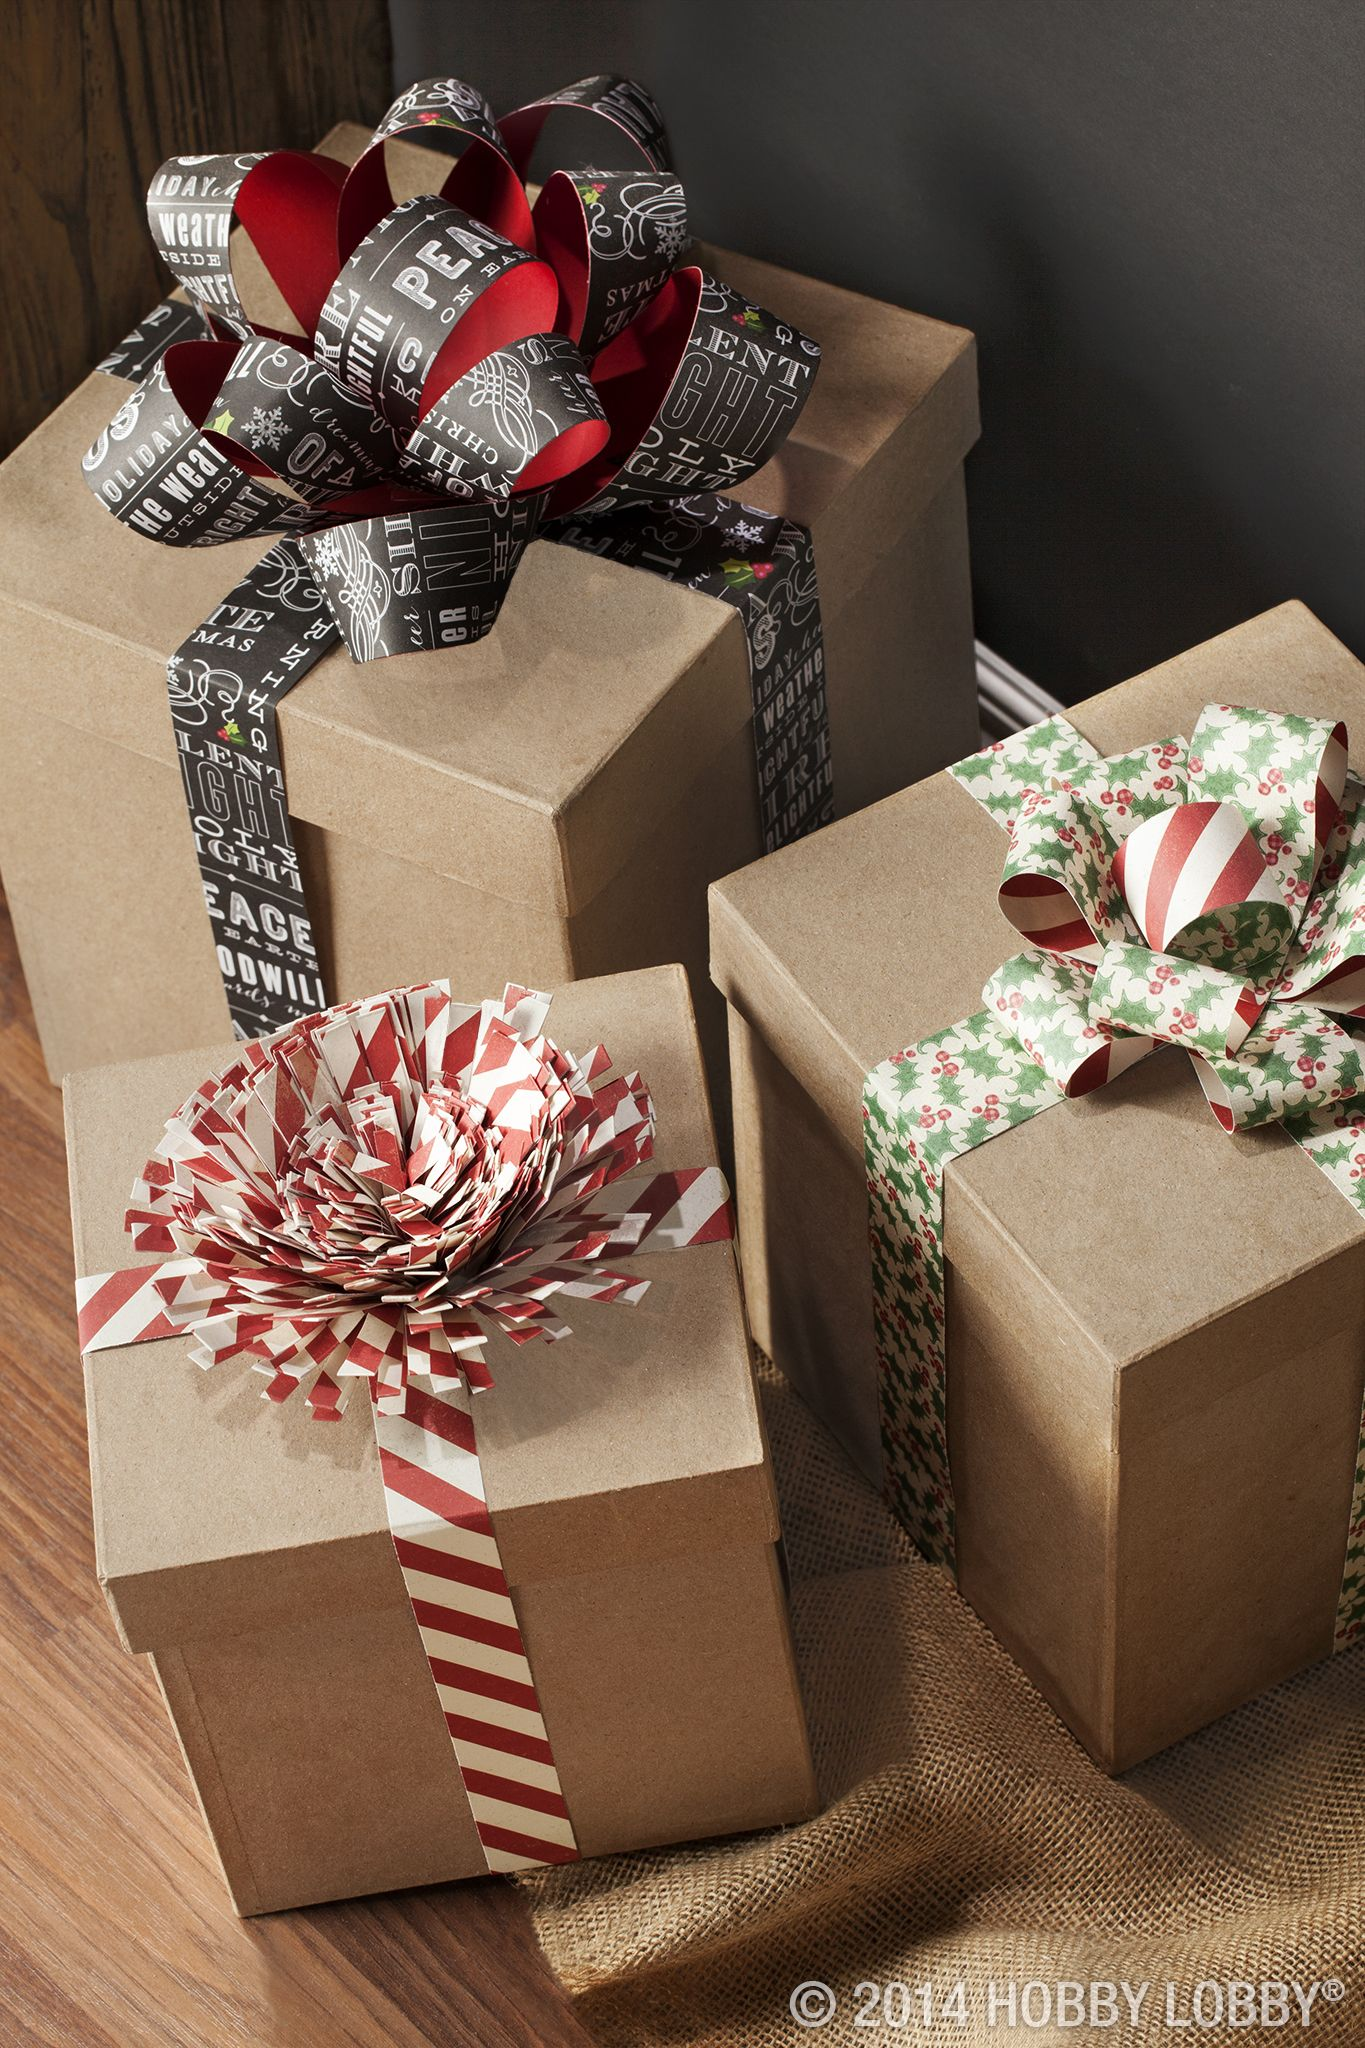 Holiday hustle and bustle cleaned out your gift wrap stash